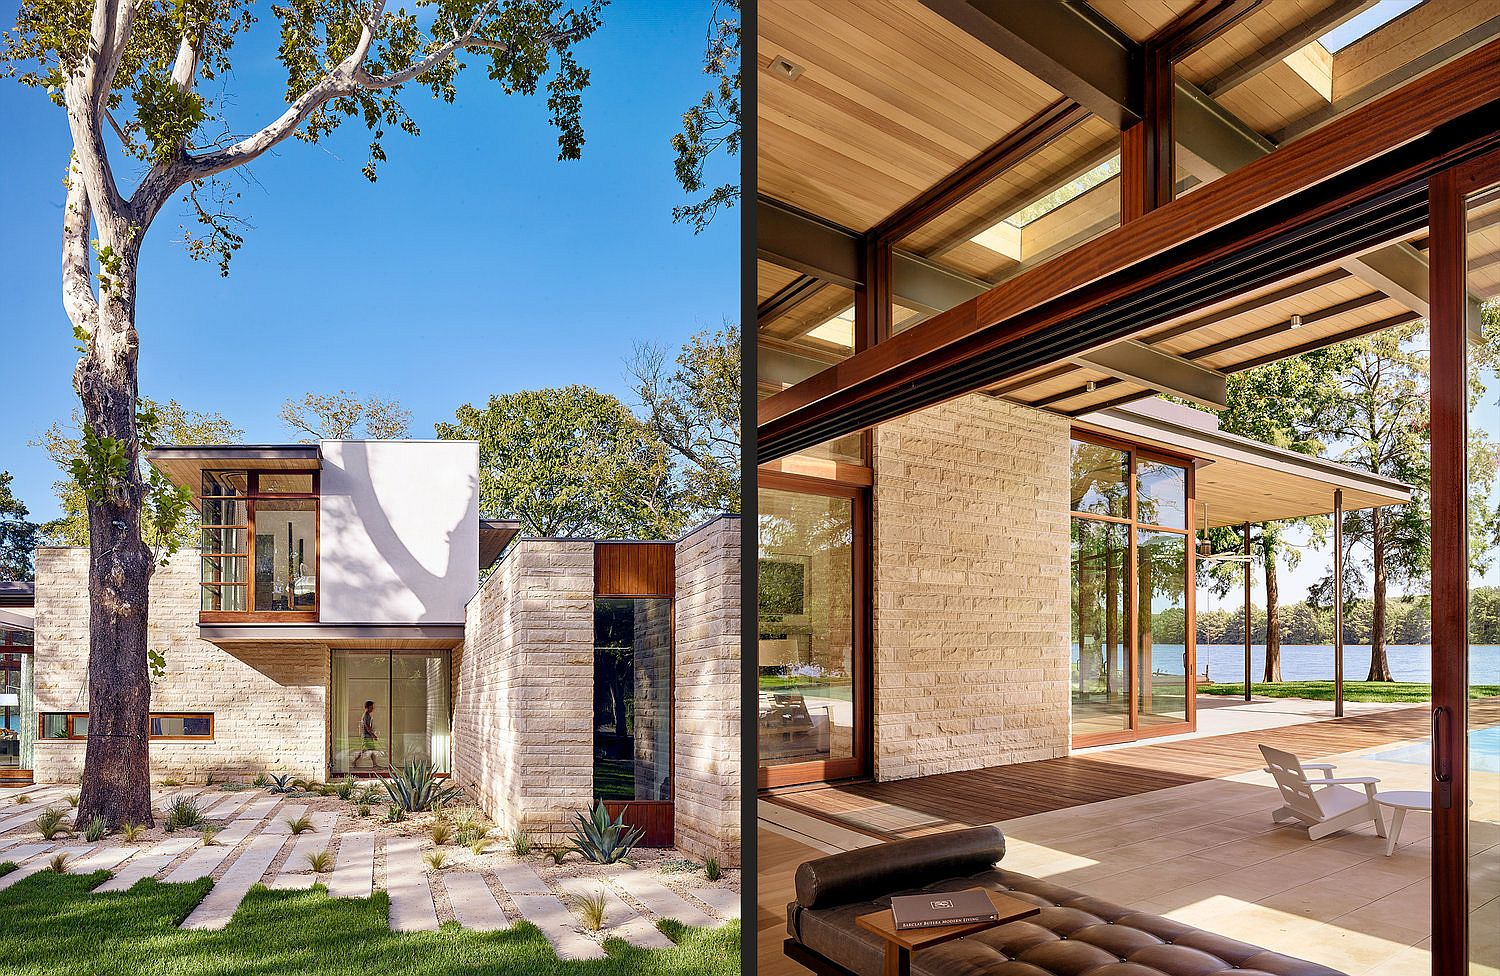 Limestone walls combined with a lovely wooden roof to create a modern home